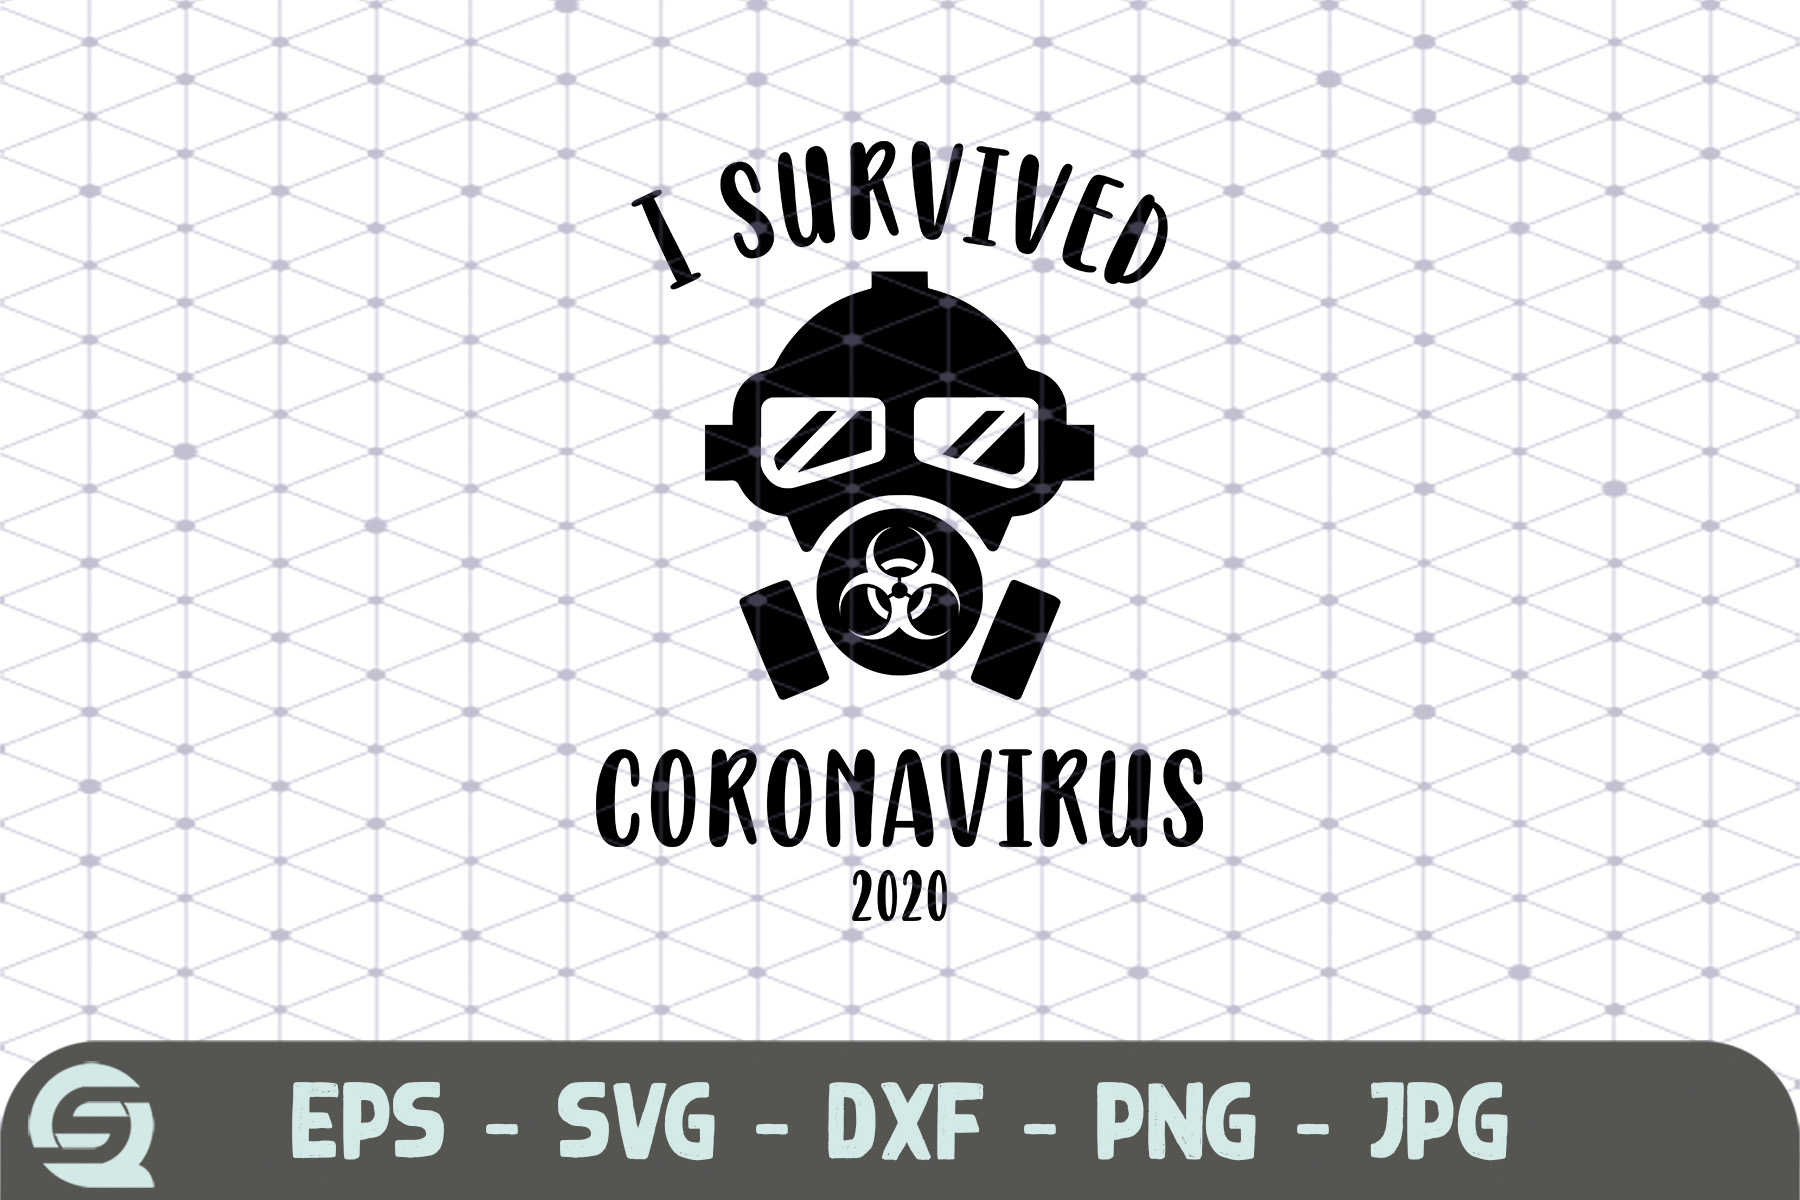 Download Free I Survived Coronavirus 2020 Mask Graphic By Crafty Files for Cricut Explore, Silhouette and other cutting machines.